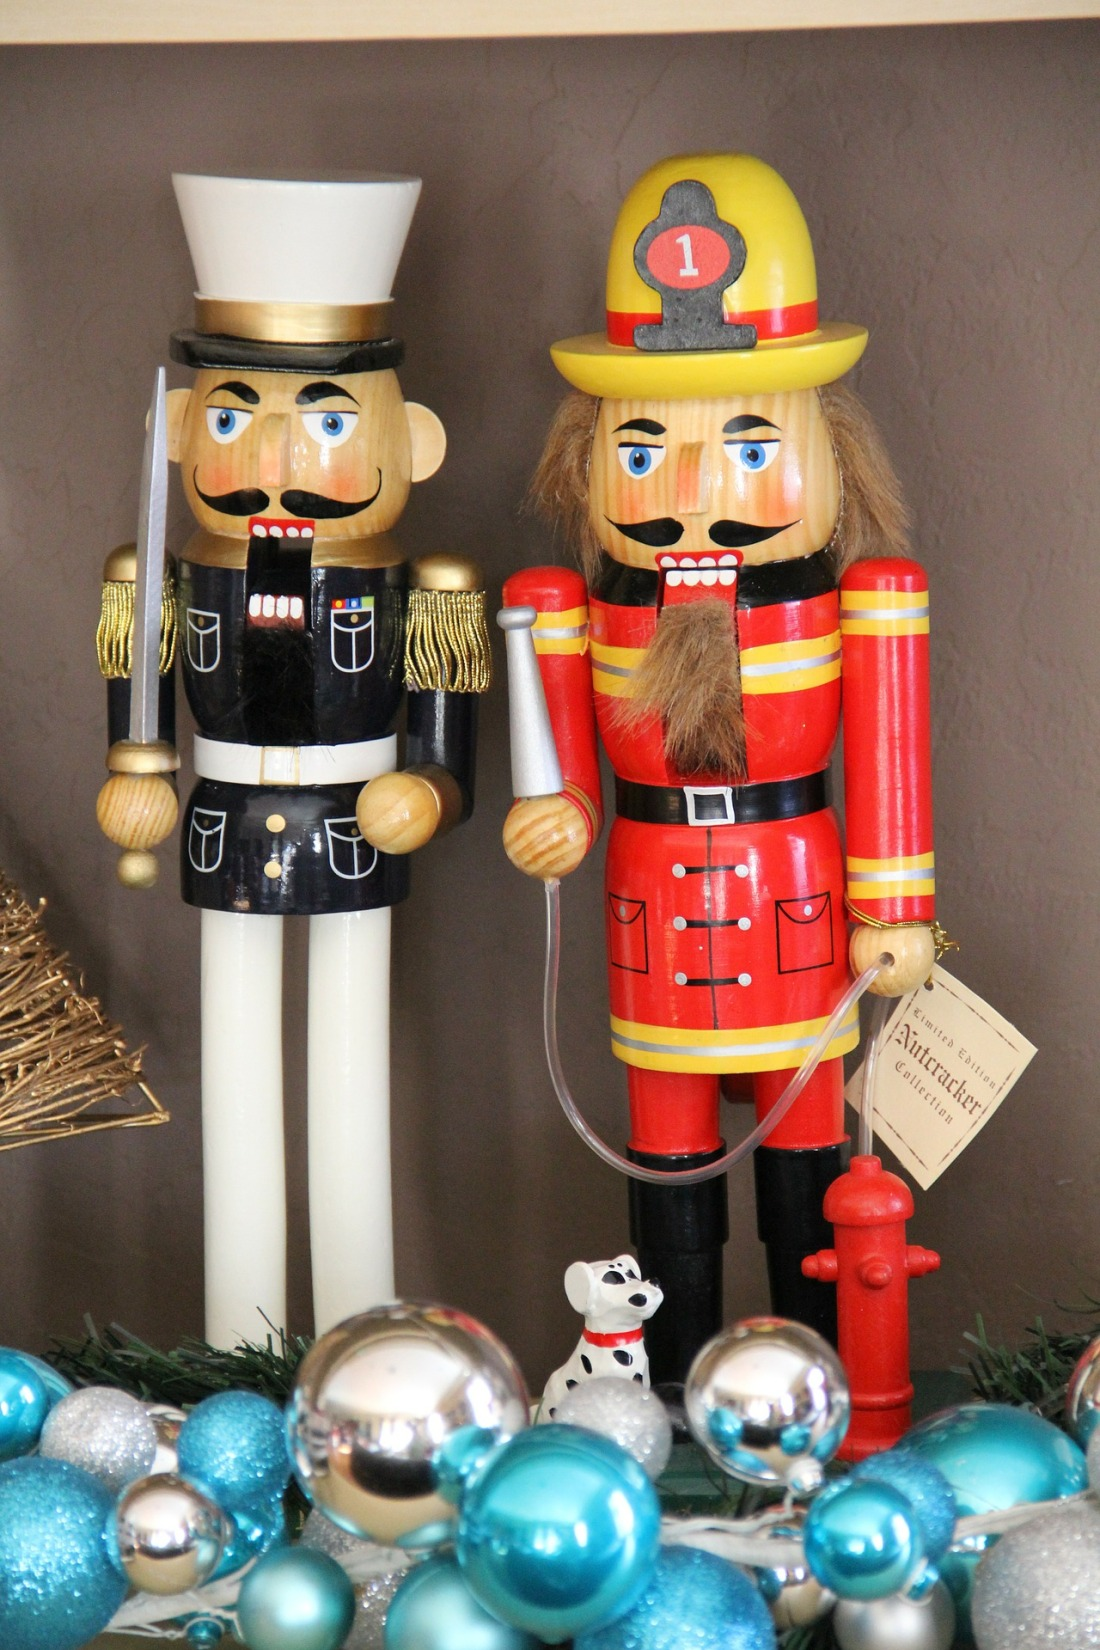 a nutcracker marine and a nutcracker fireman